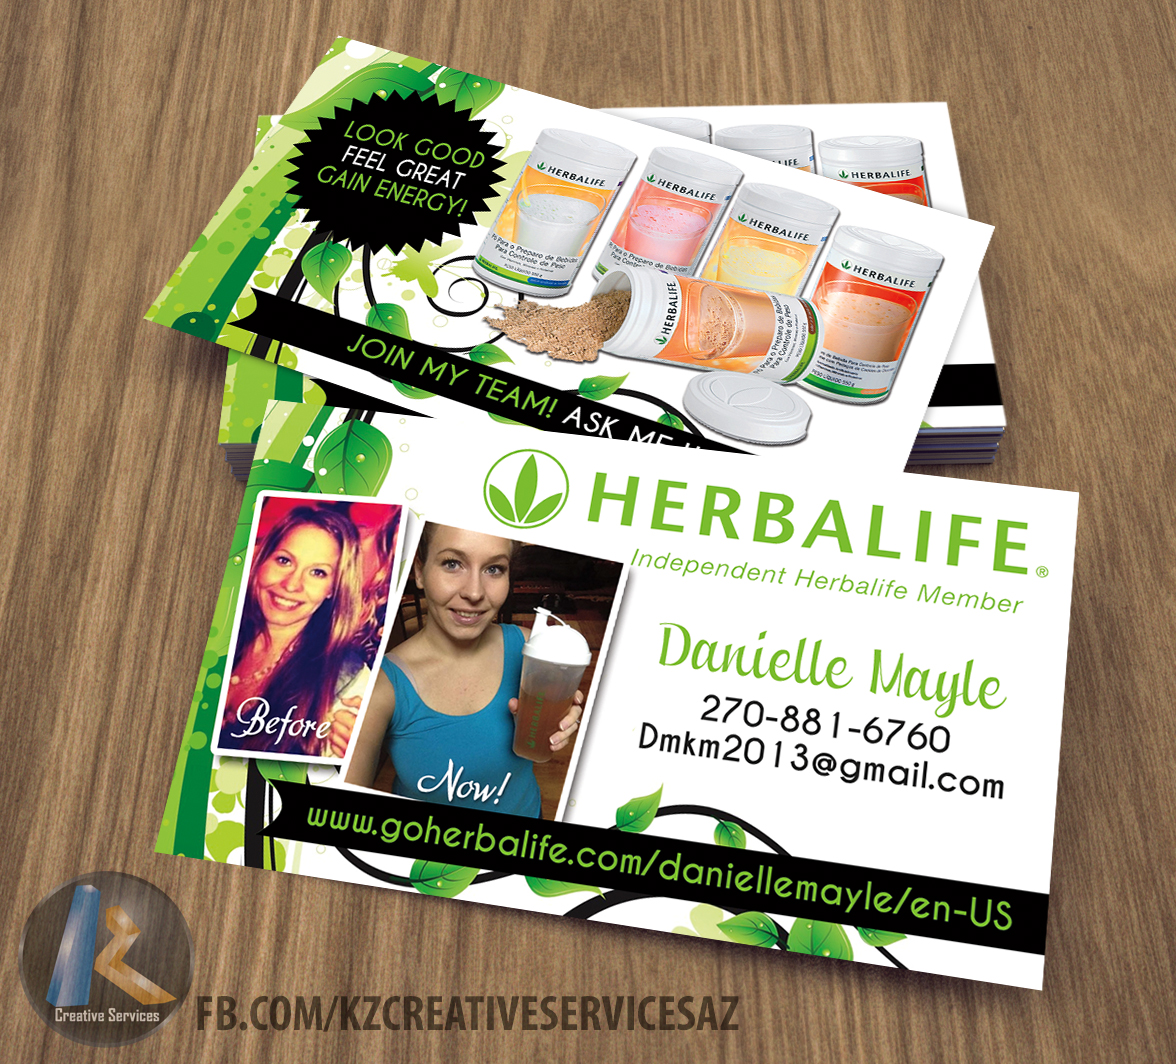 herbalife business cards style 2 - Herbalife Business Cards